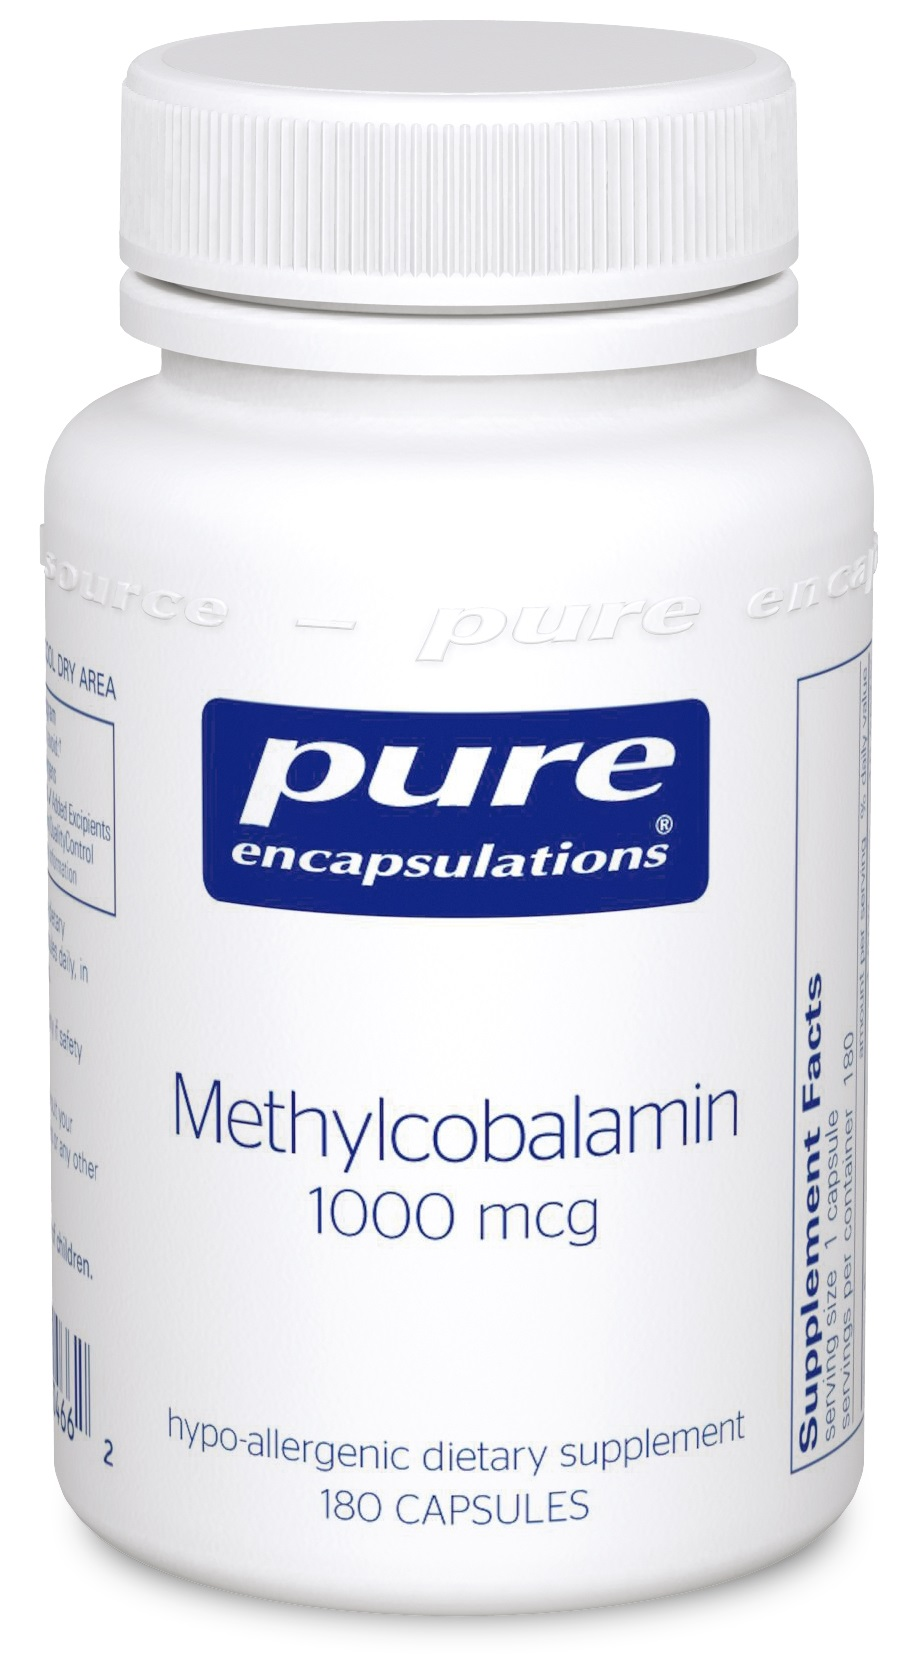 Pure Encapsulations Methylcobalamin